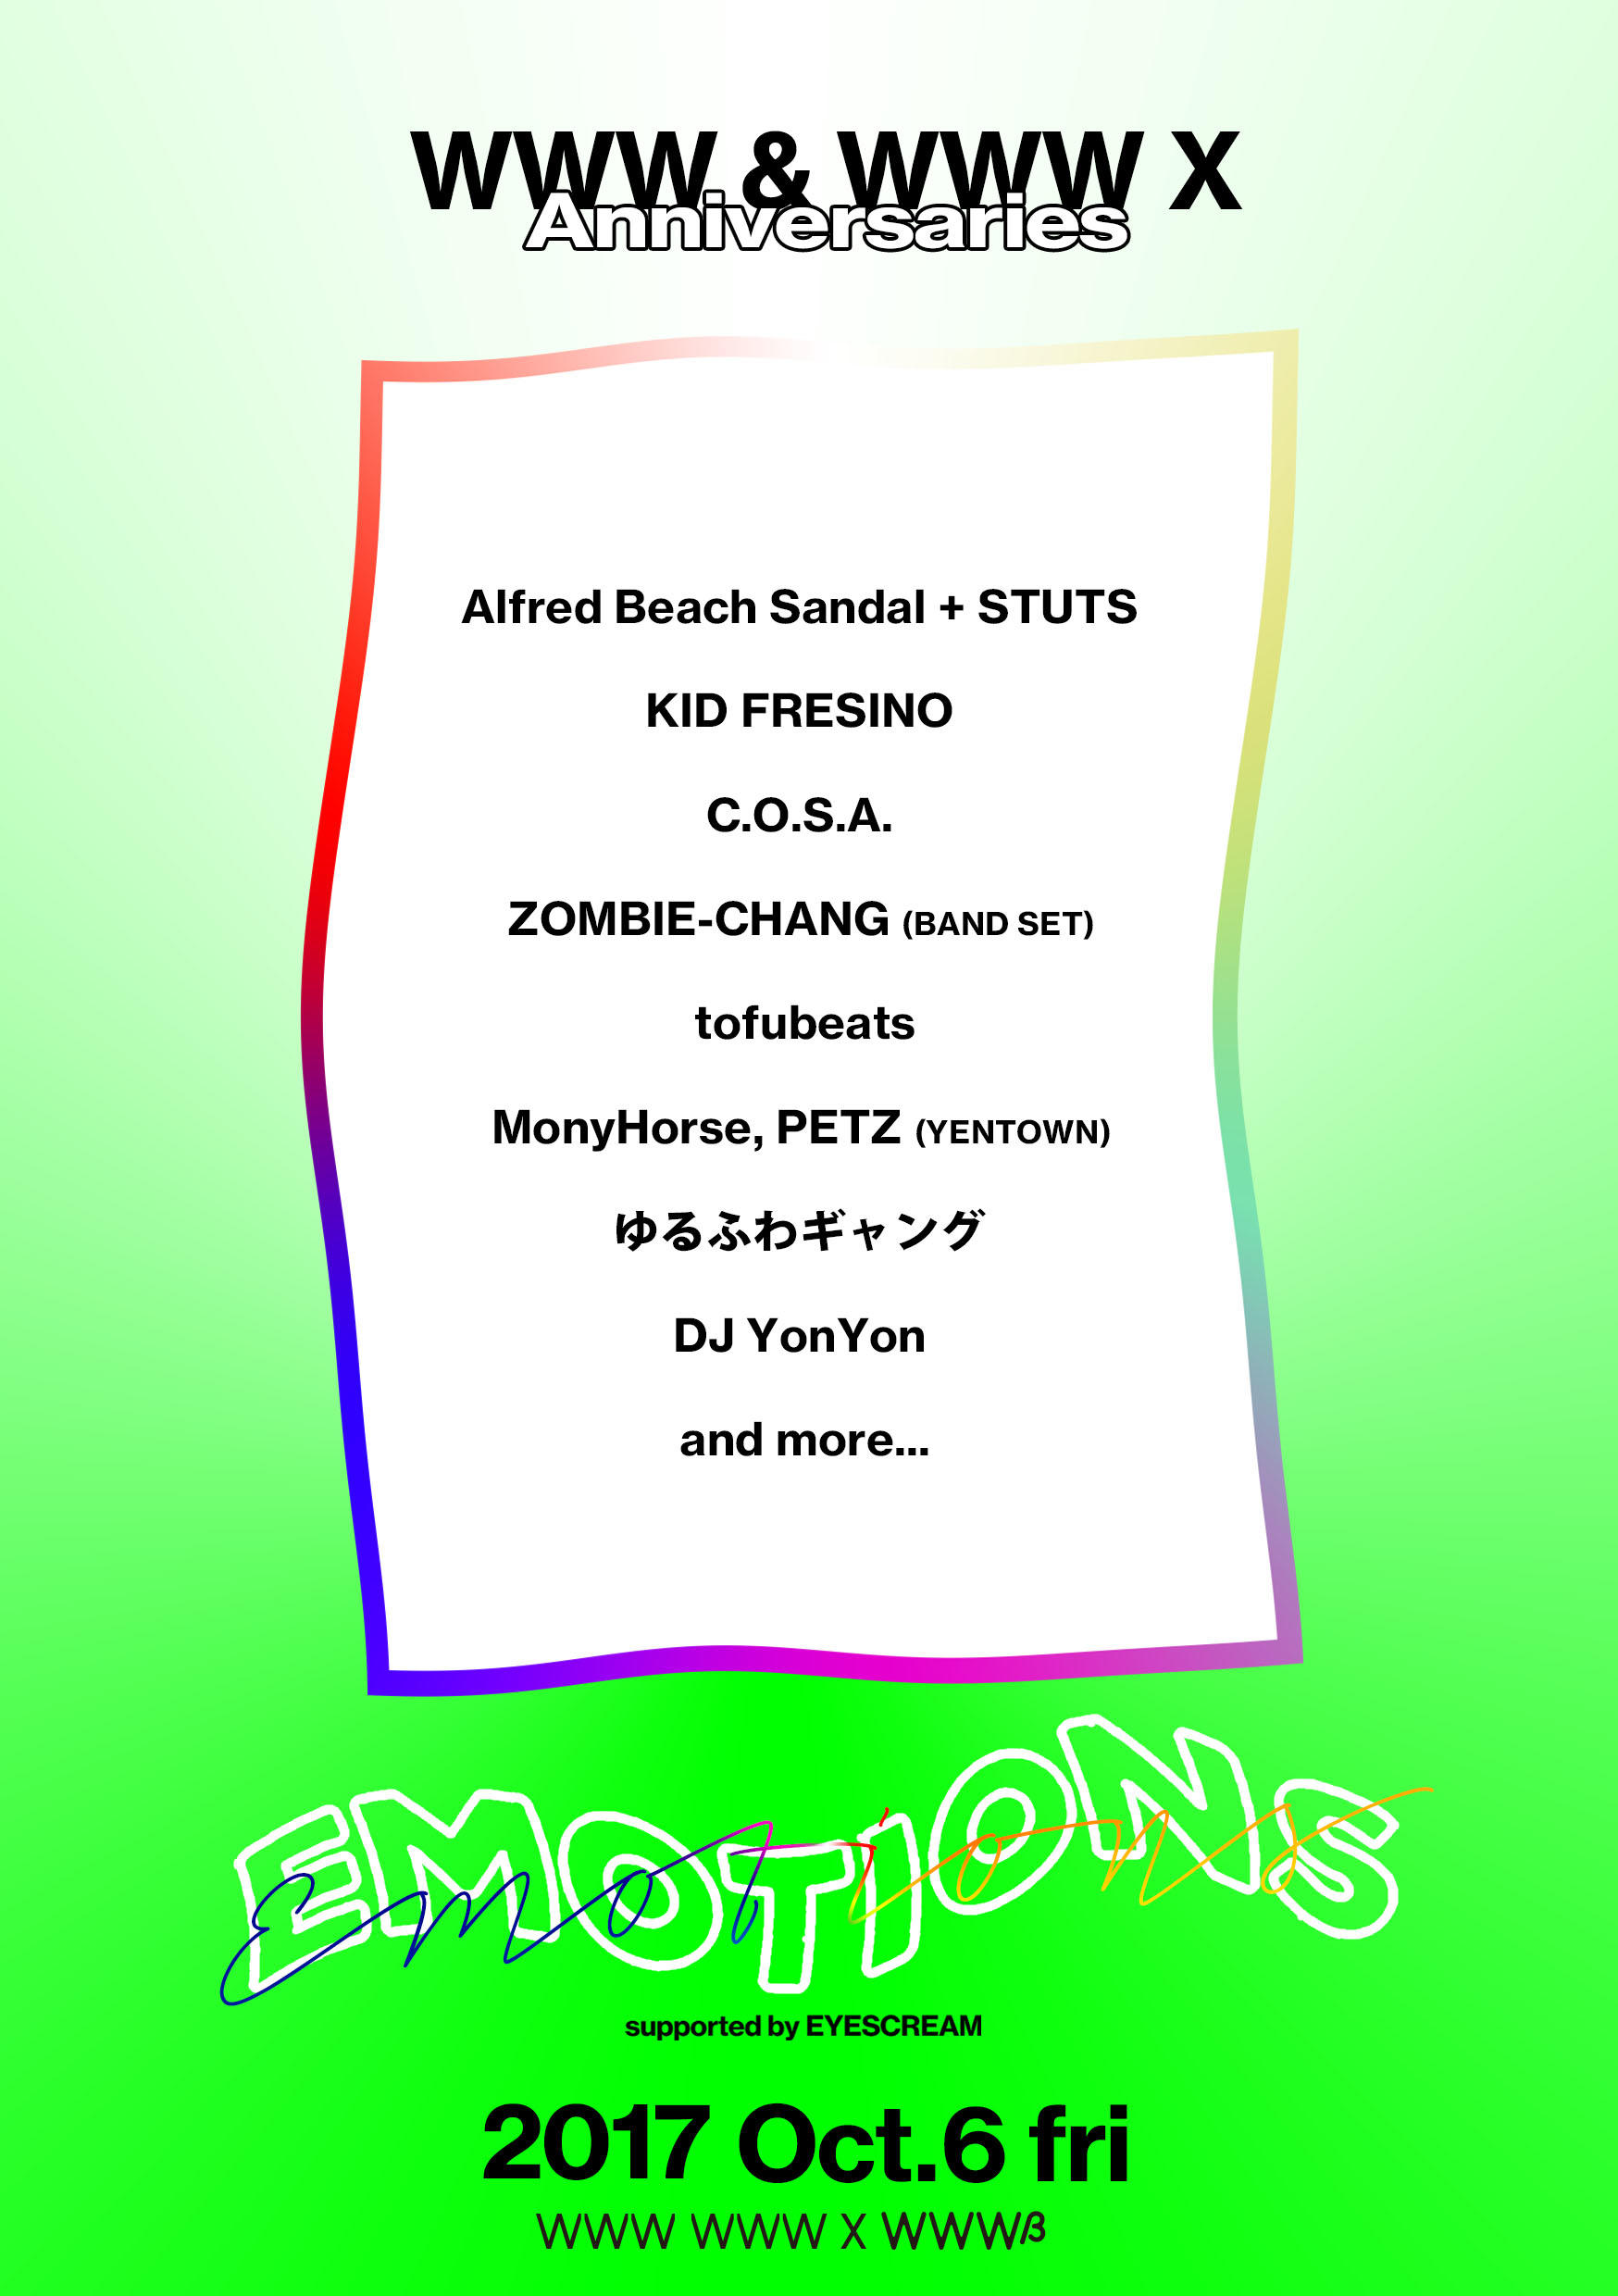 171006_Emotions_flyer.jpg